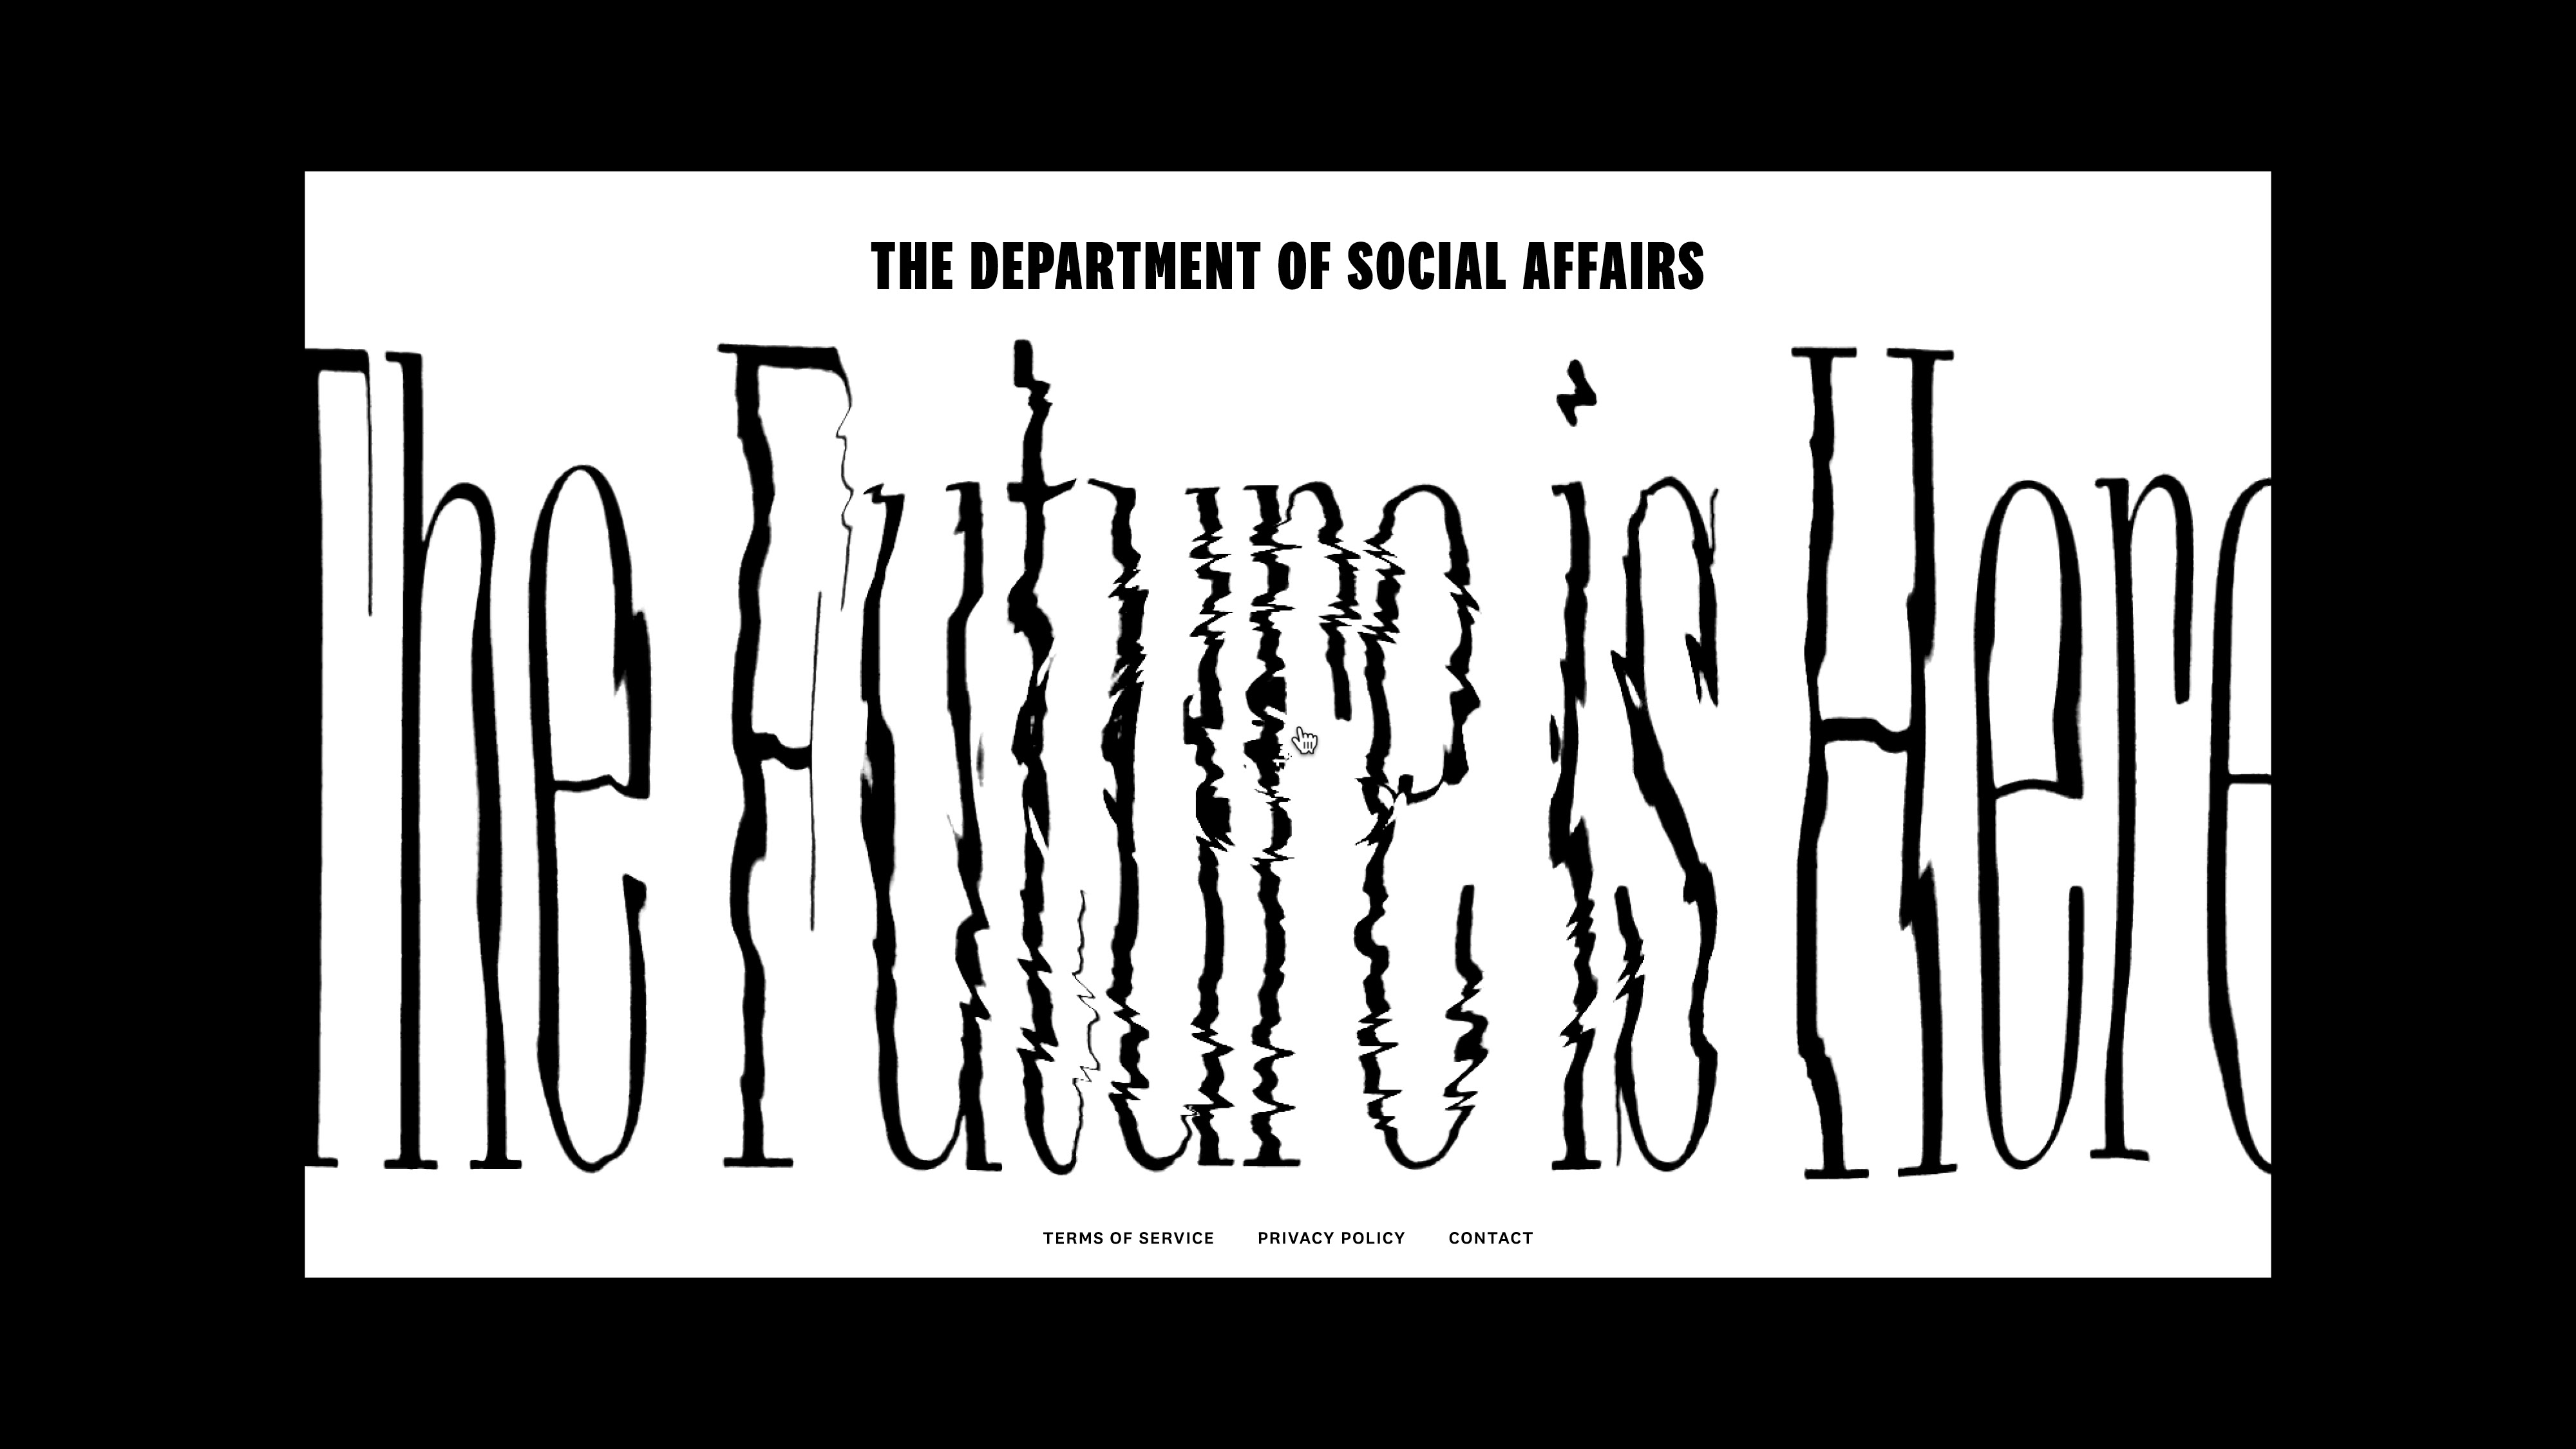 The Department of Social Affairs